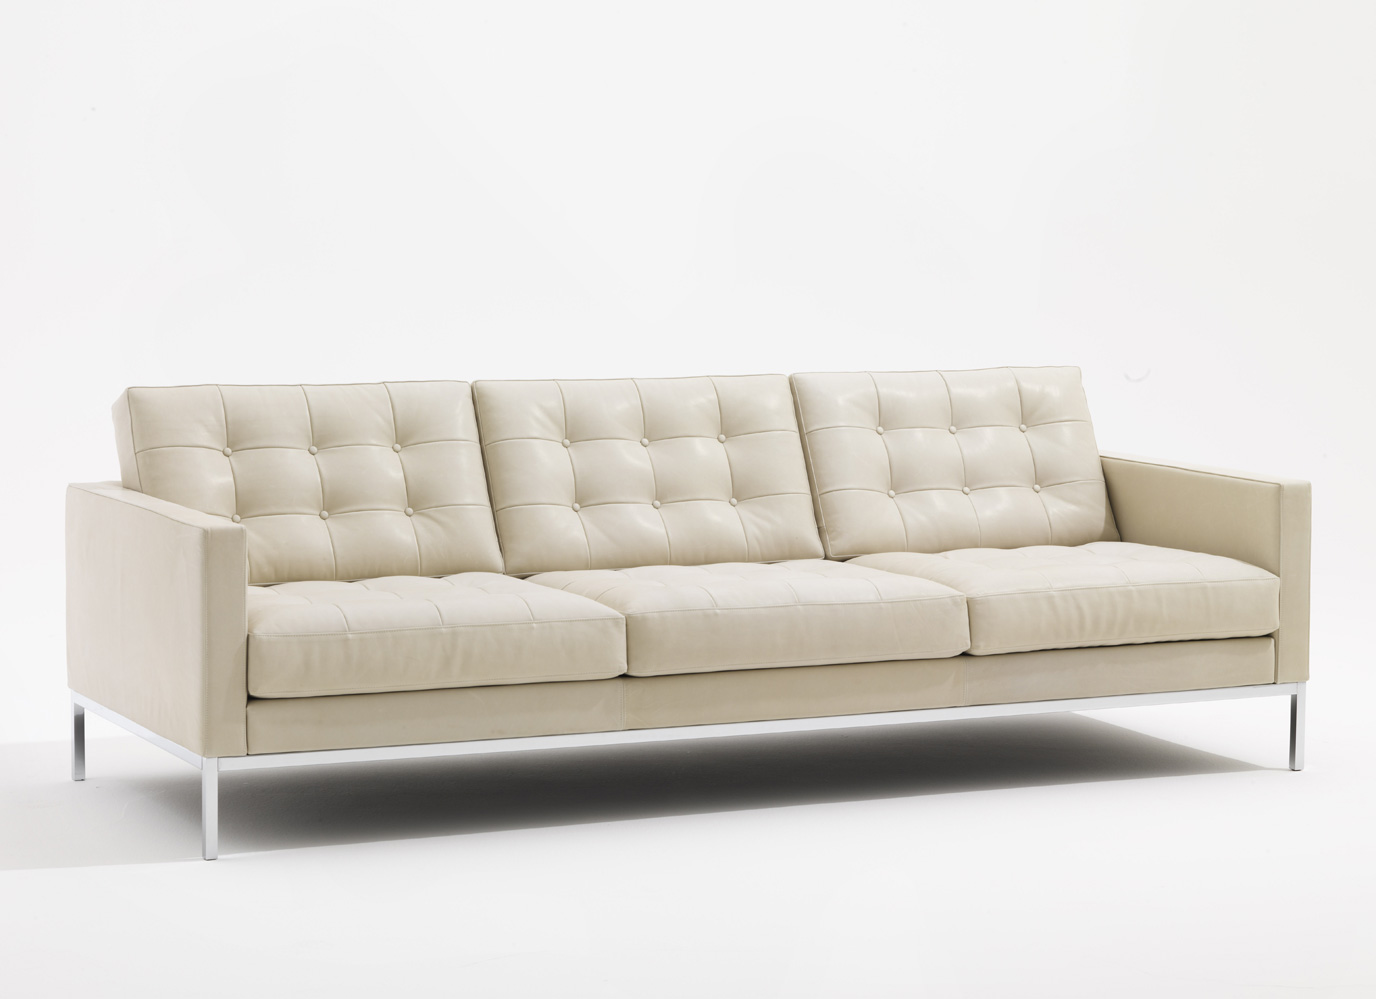 Florence Knoll Sessel Knoll Sofa Relax